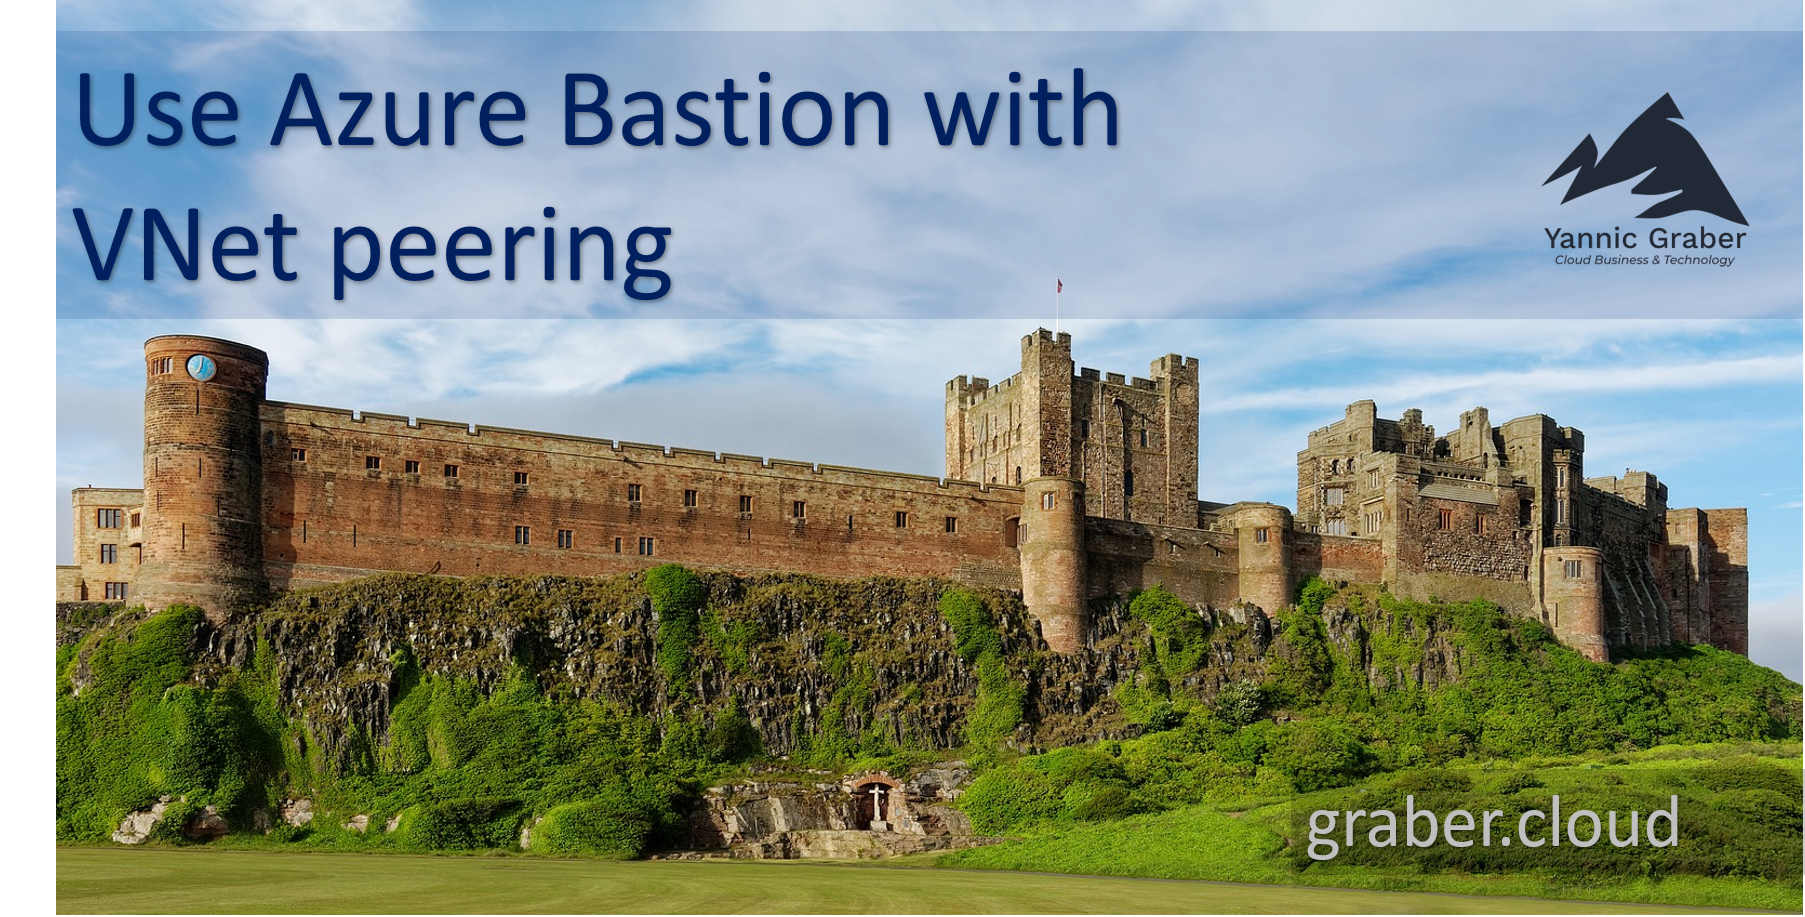 Azure Bastion with VNet peering